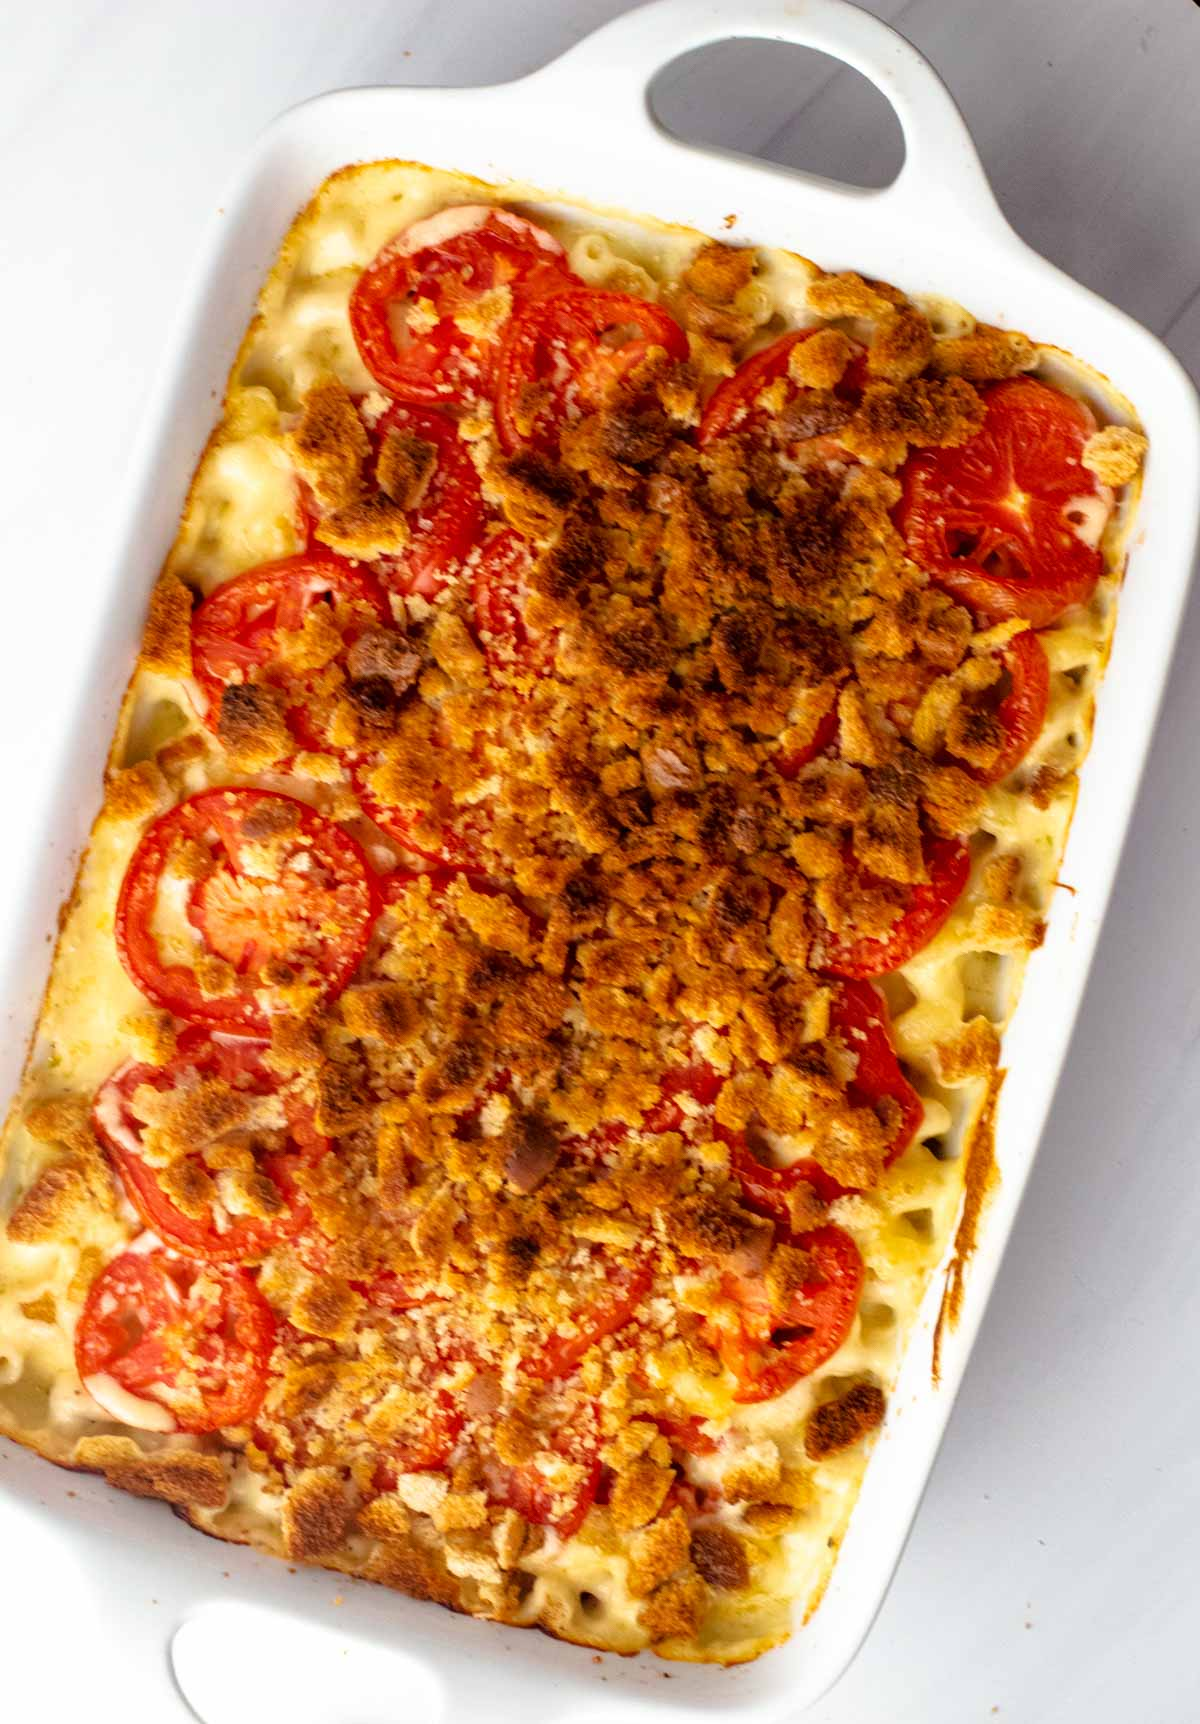 Baked macaroni and cheese with tomatoes